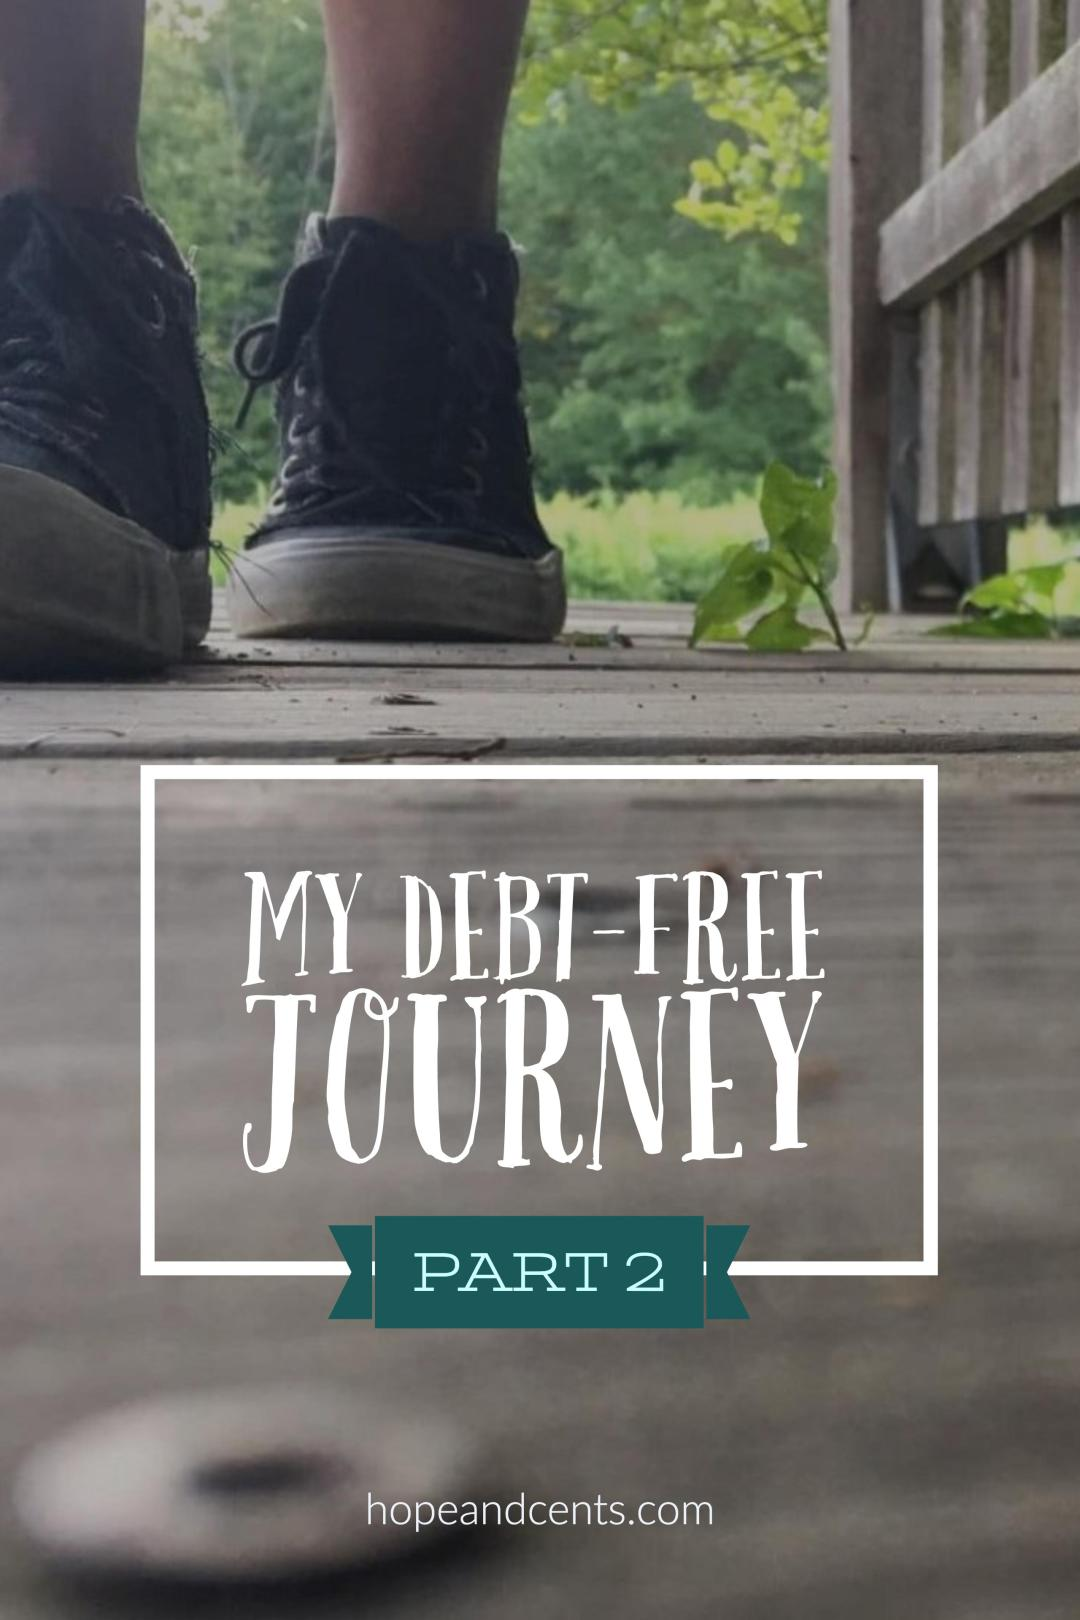 Part 2 of my Debt-Free Journey. It's been almost five years since I paid off all $74,000 of my consumer debt and have been debt-free.